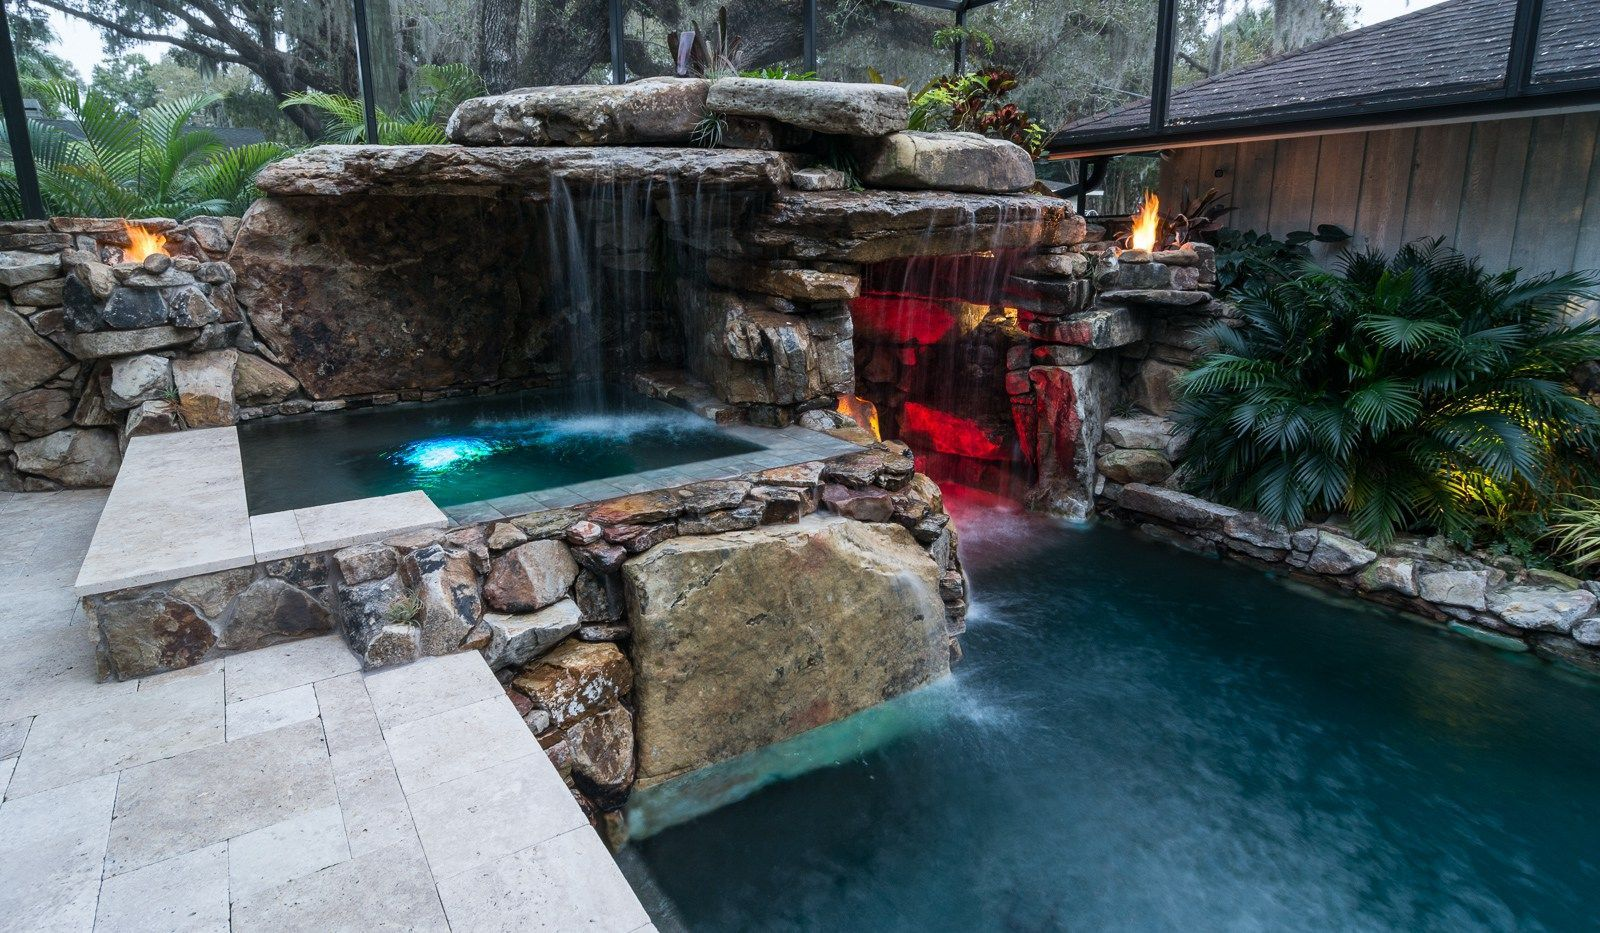 These Sheer Descent Waterfalls Are A Fun Way To Add A Cool New Element To Your Pool Area Swimmingpool Pool Dream Backyard Pool Insane Pools Pool Houses